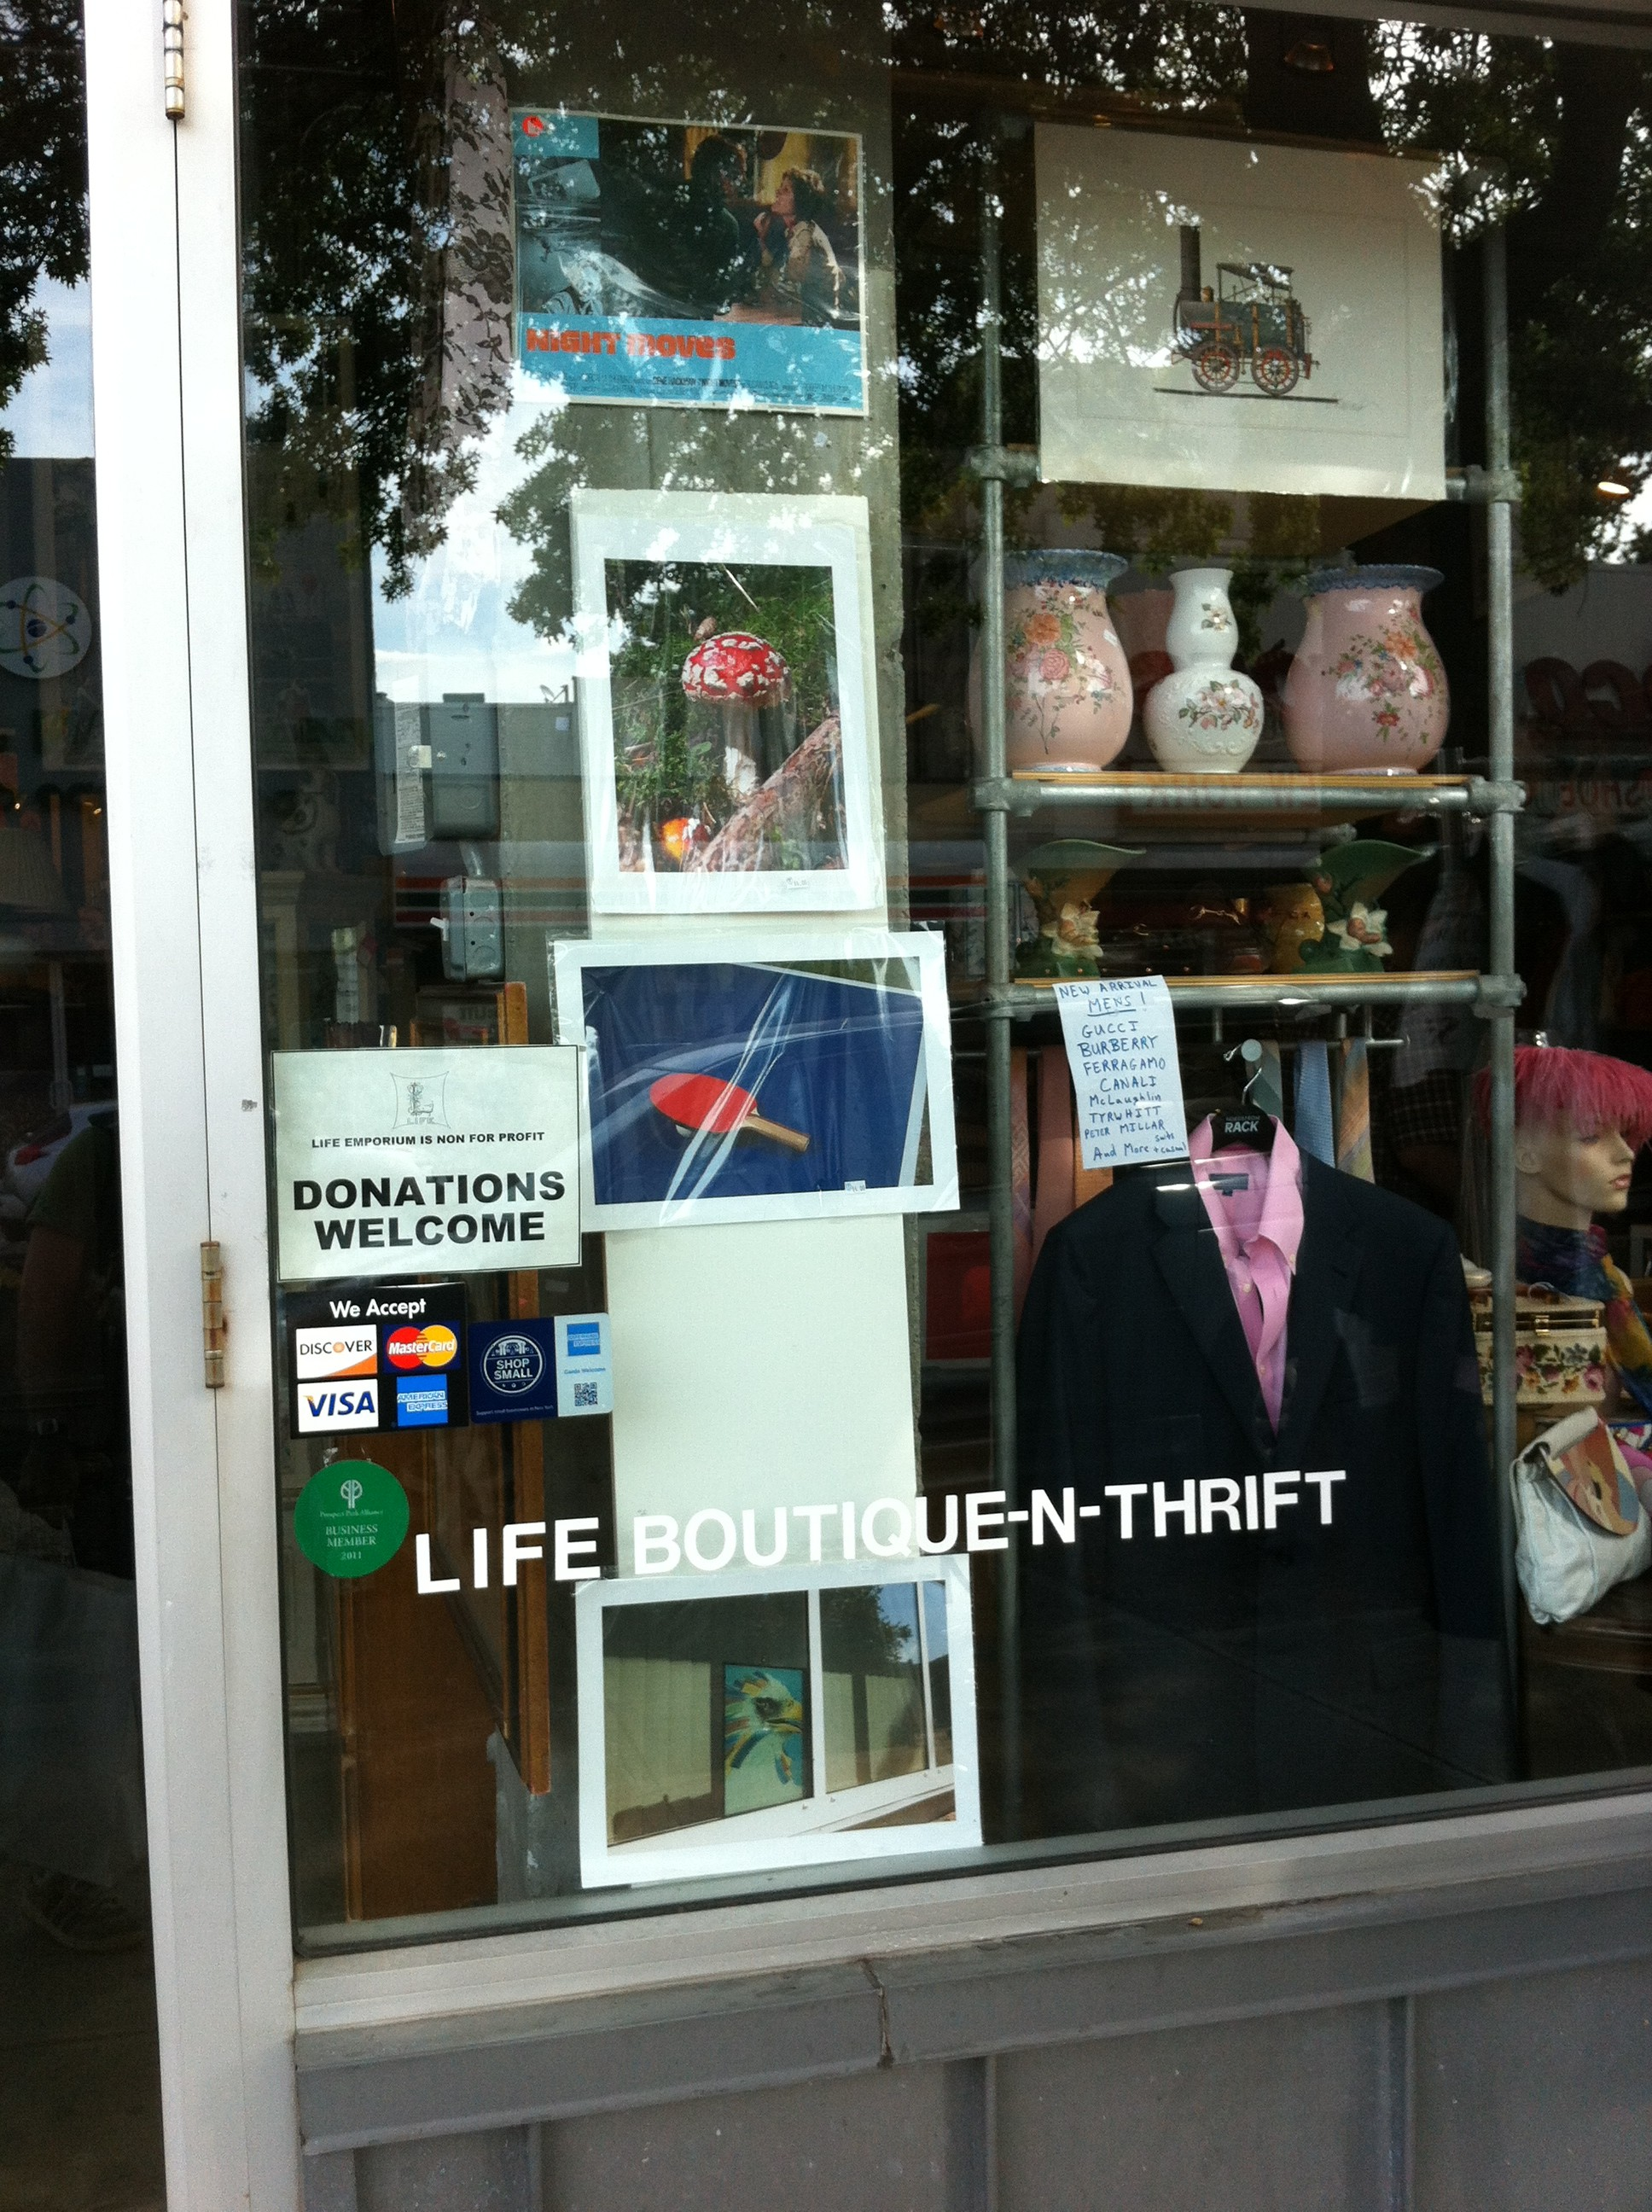 A close-up exterior shot of Life Boutique-N-Thrift in Brooklyn, NY